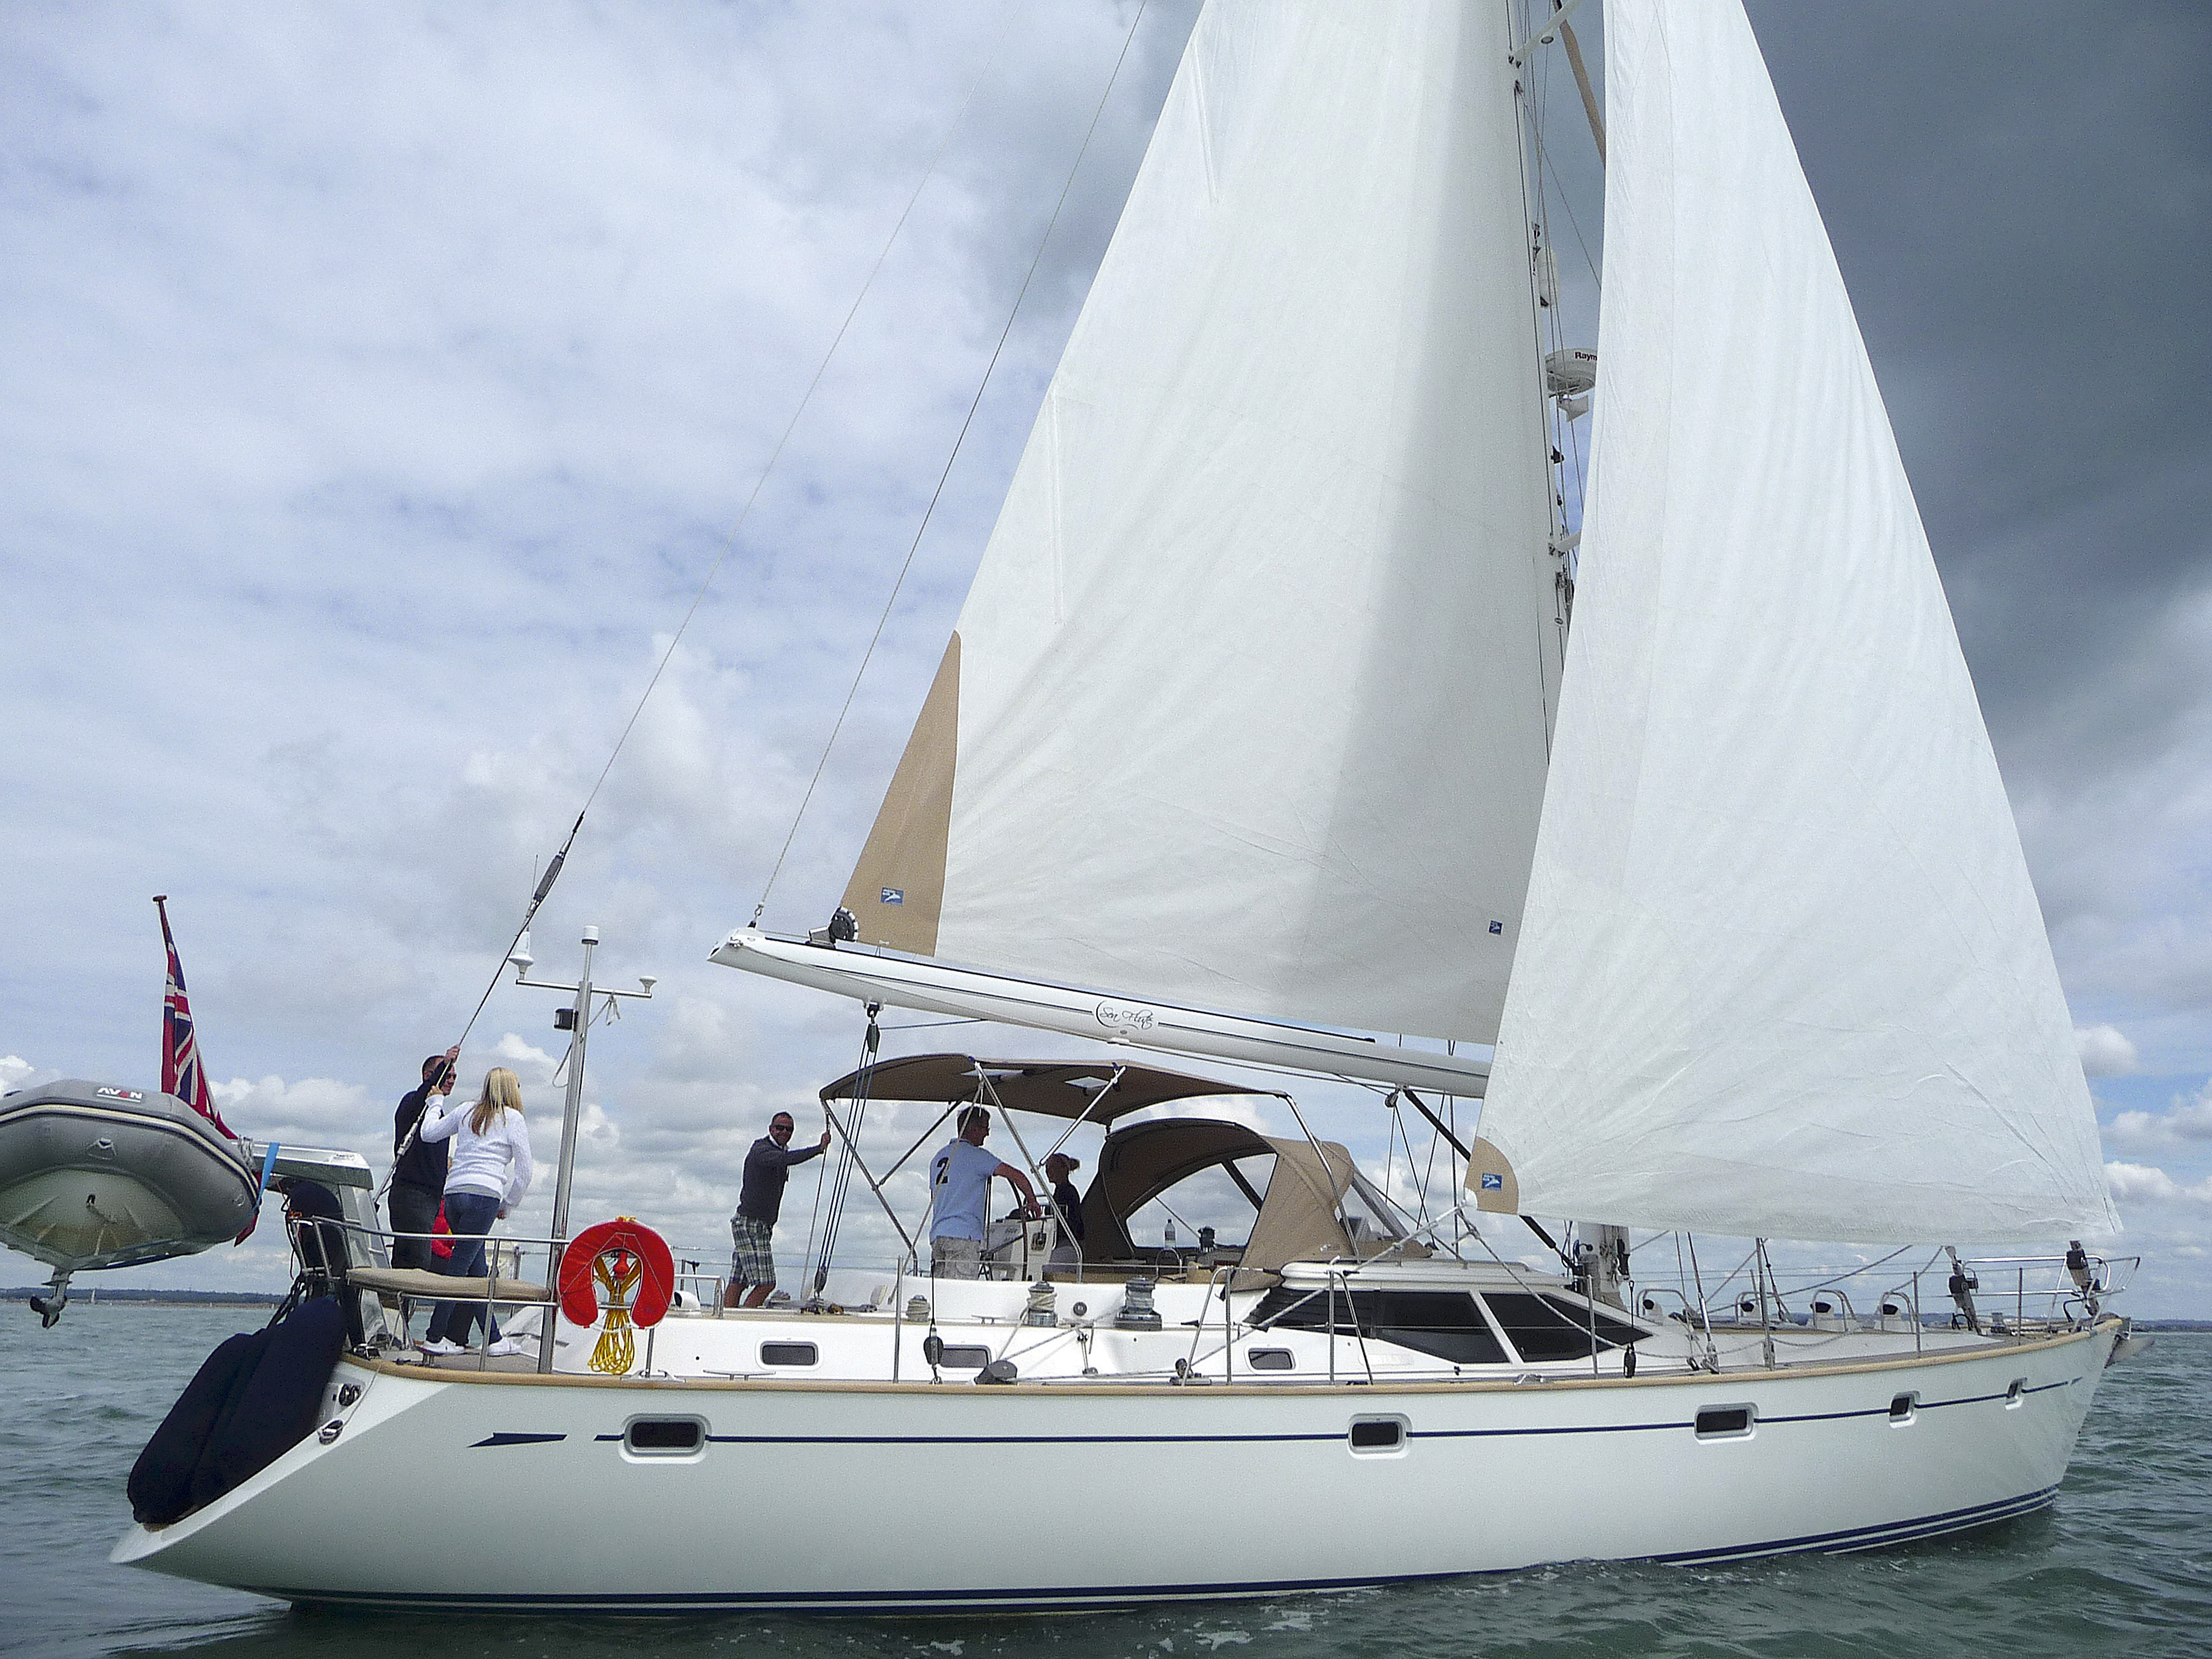 Yacht refit tips save money and project manage the work yourself sea flute sailing again solutioingenieria Choice Image